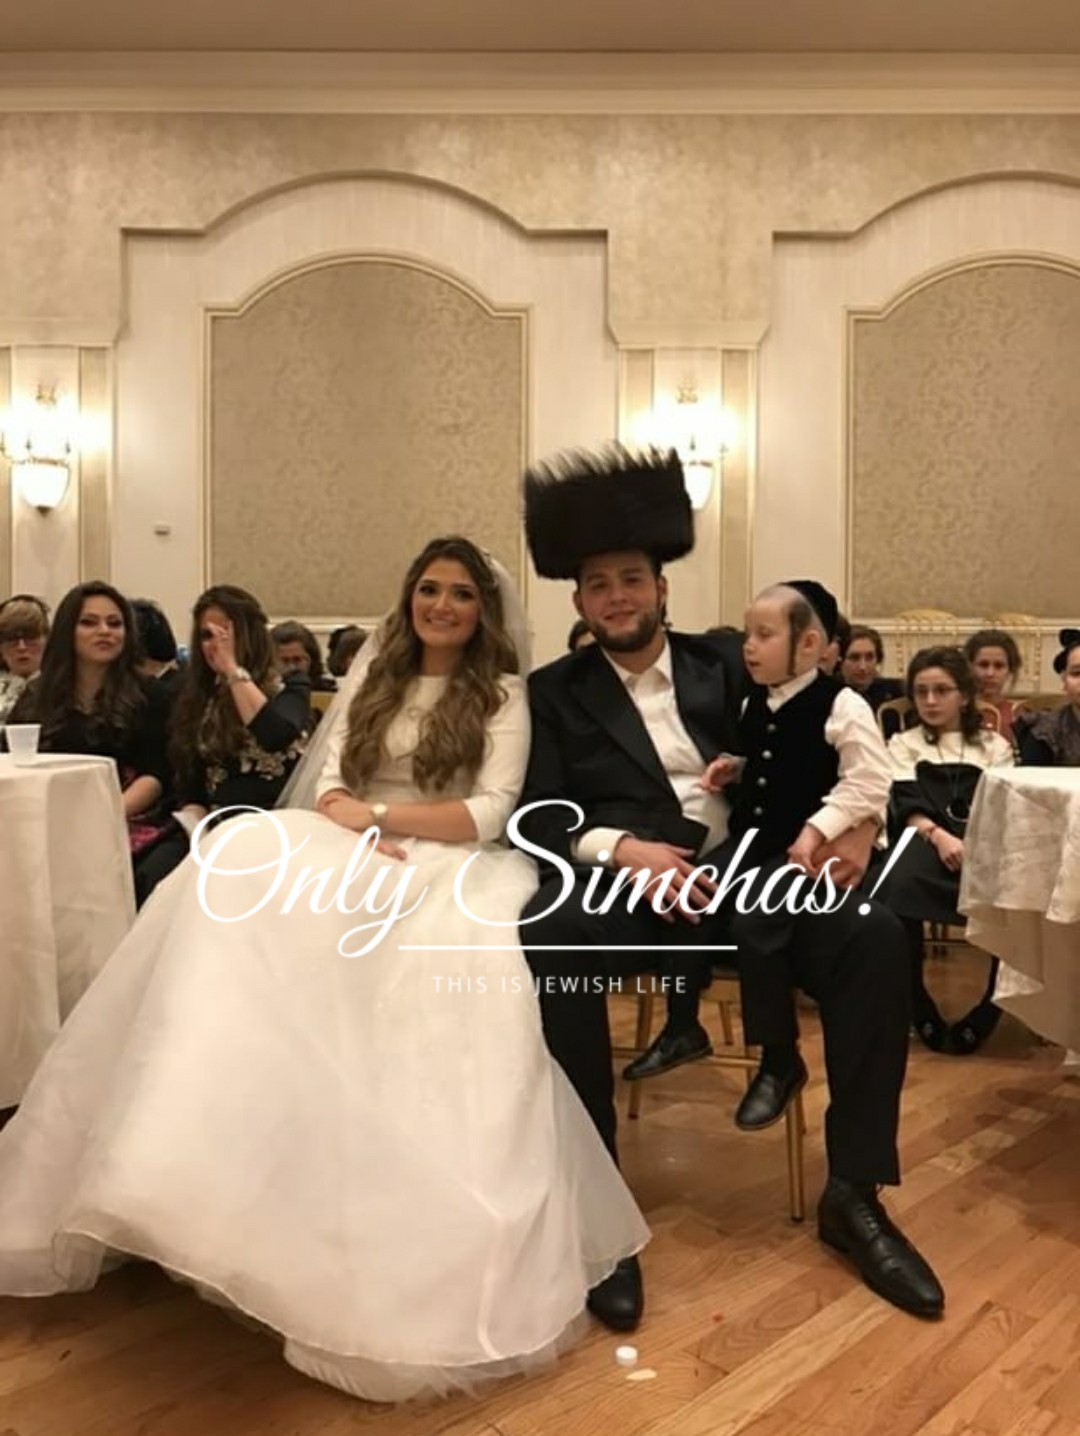 wedding of yoina buxbaum williamsburg rivky weiss boro park only simchas. Black Bedroom Furniture Sets. Home Design Ideas